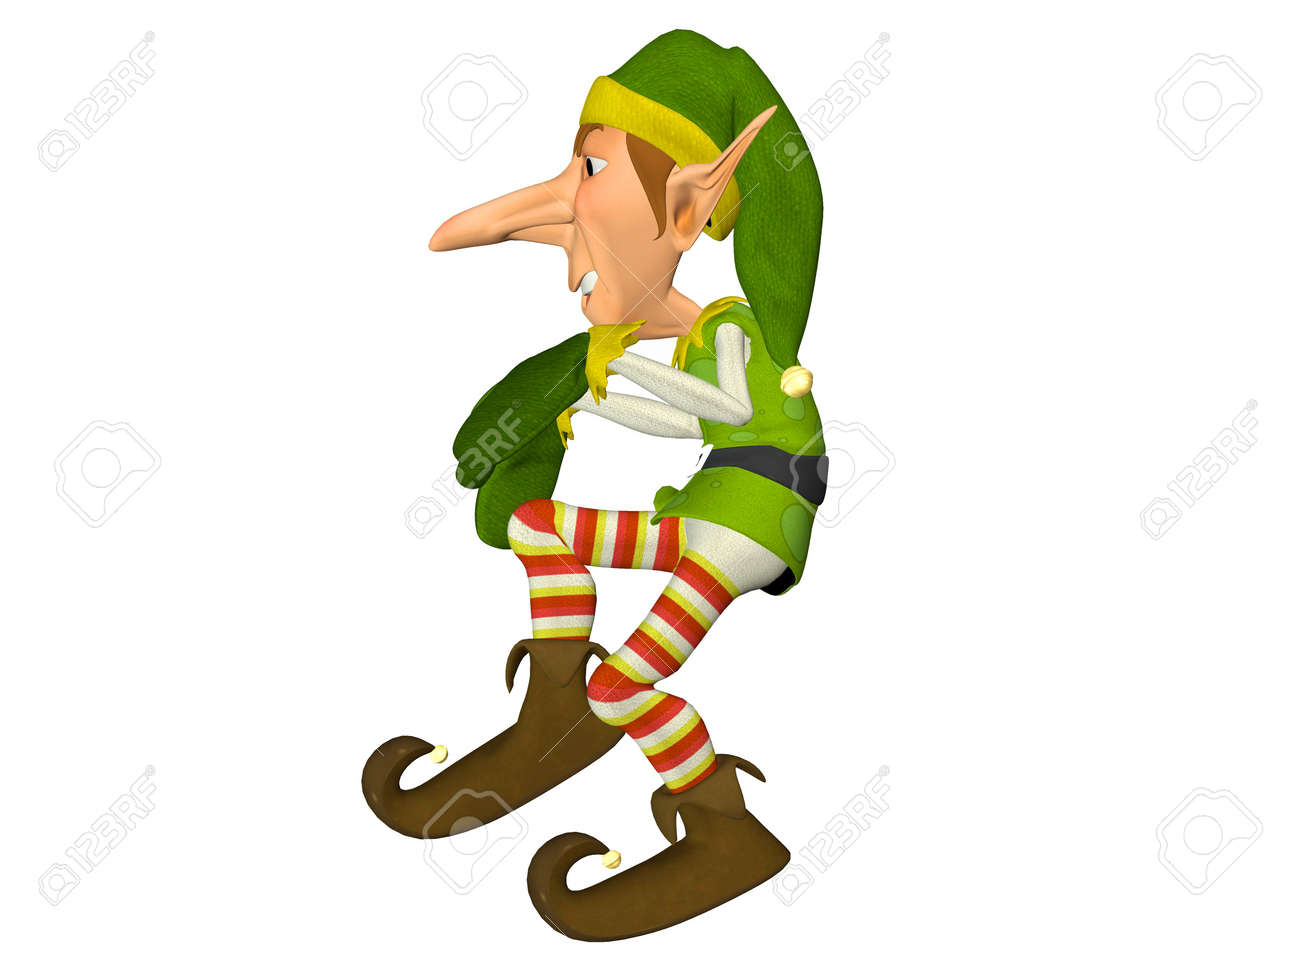 Illustration Of A Christmas Elf Isolated On A White Background Stock ...